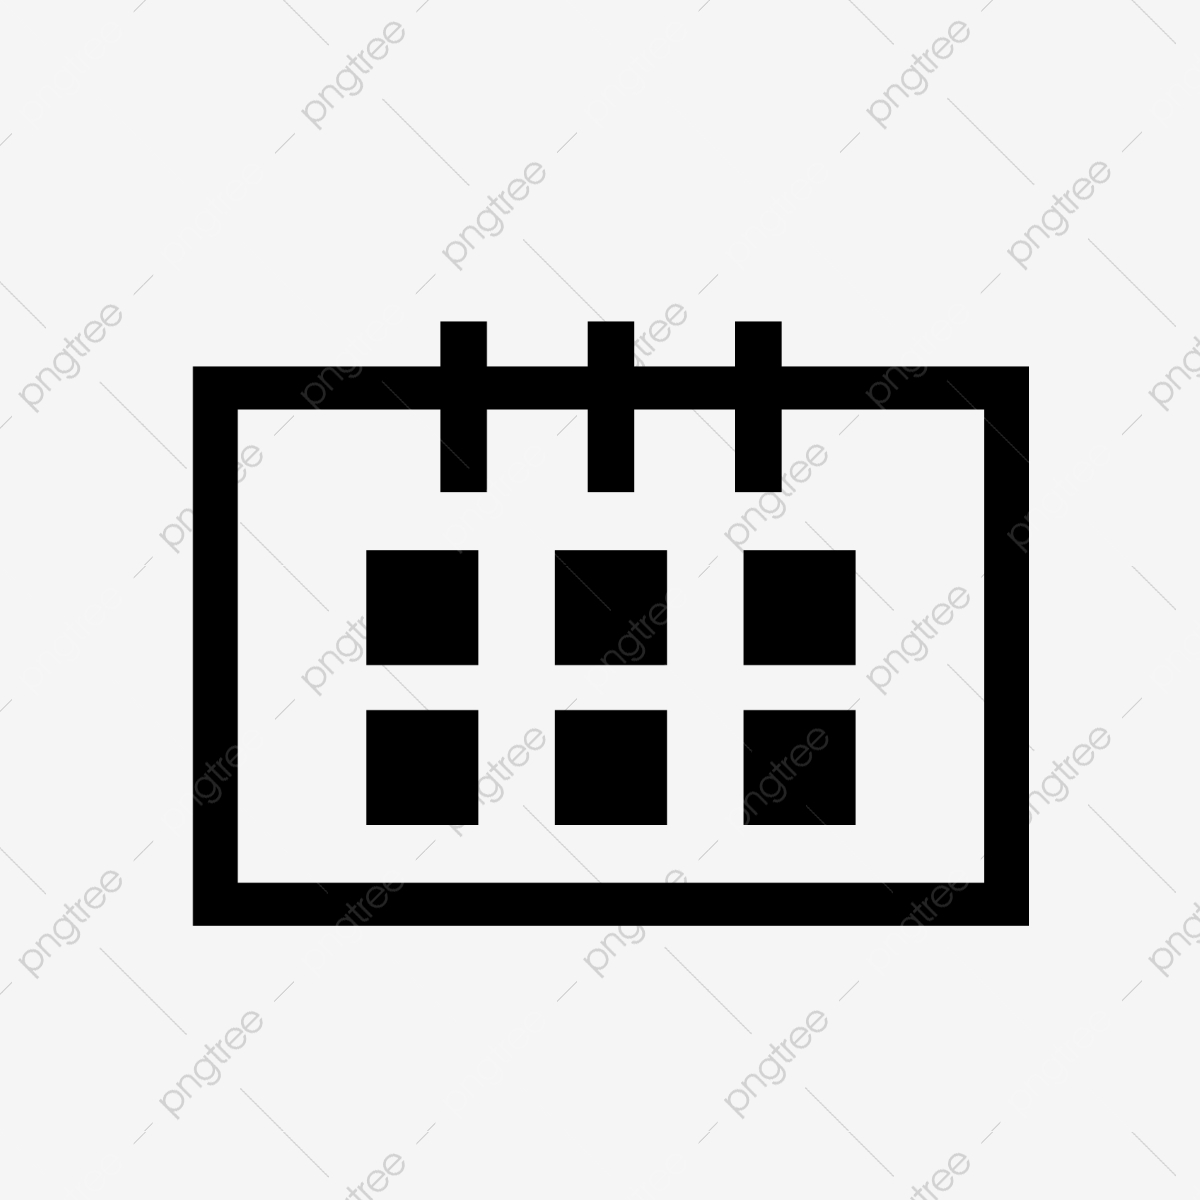 Calendrier Icone Png.Calendrier Date Icone Icone Calendrier Calendrier Jaune